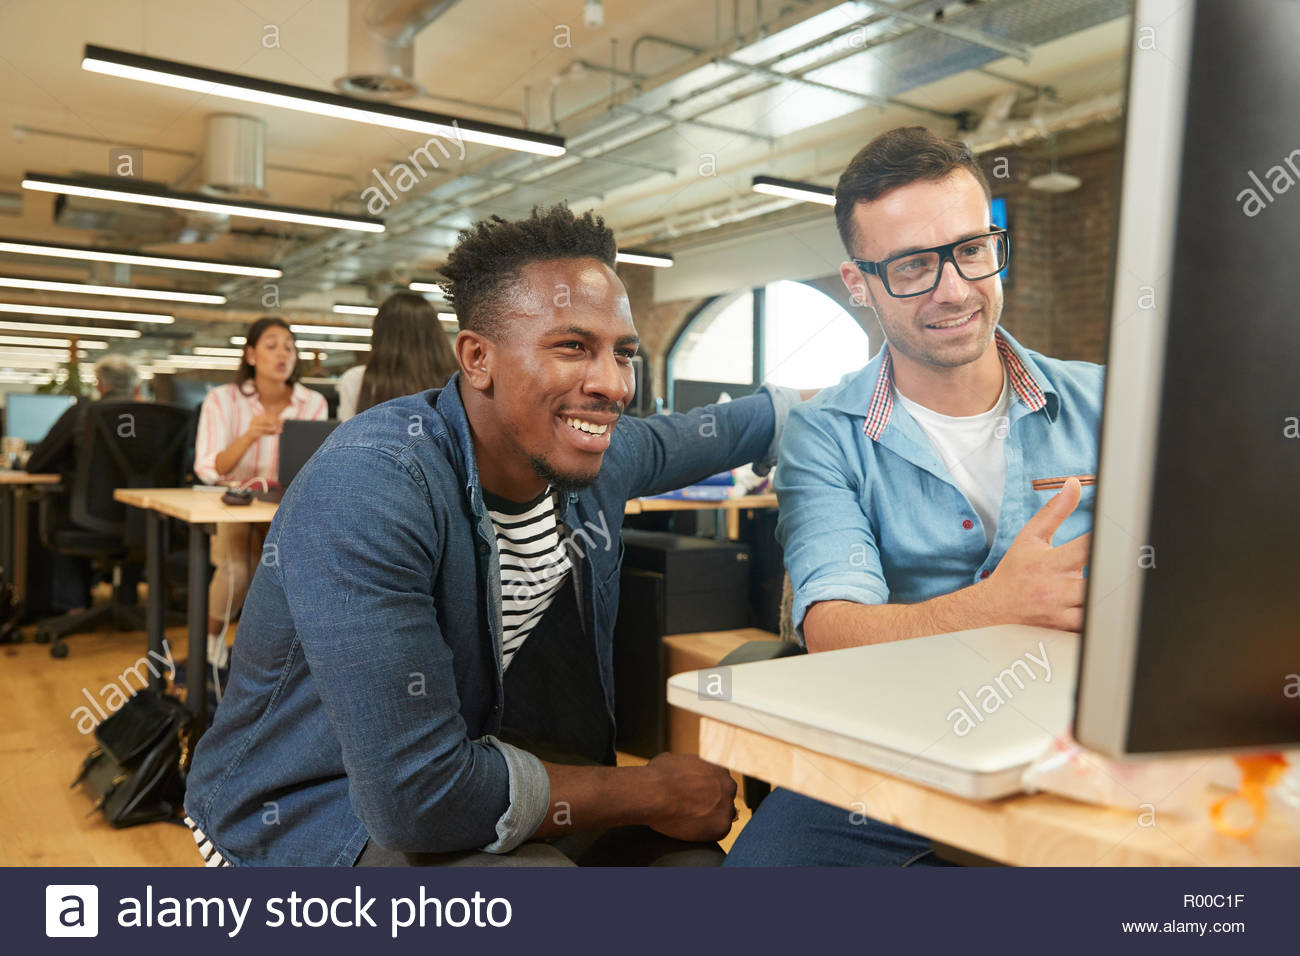 Smiling colleagues using computer Stock Photo